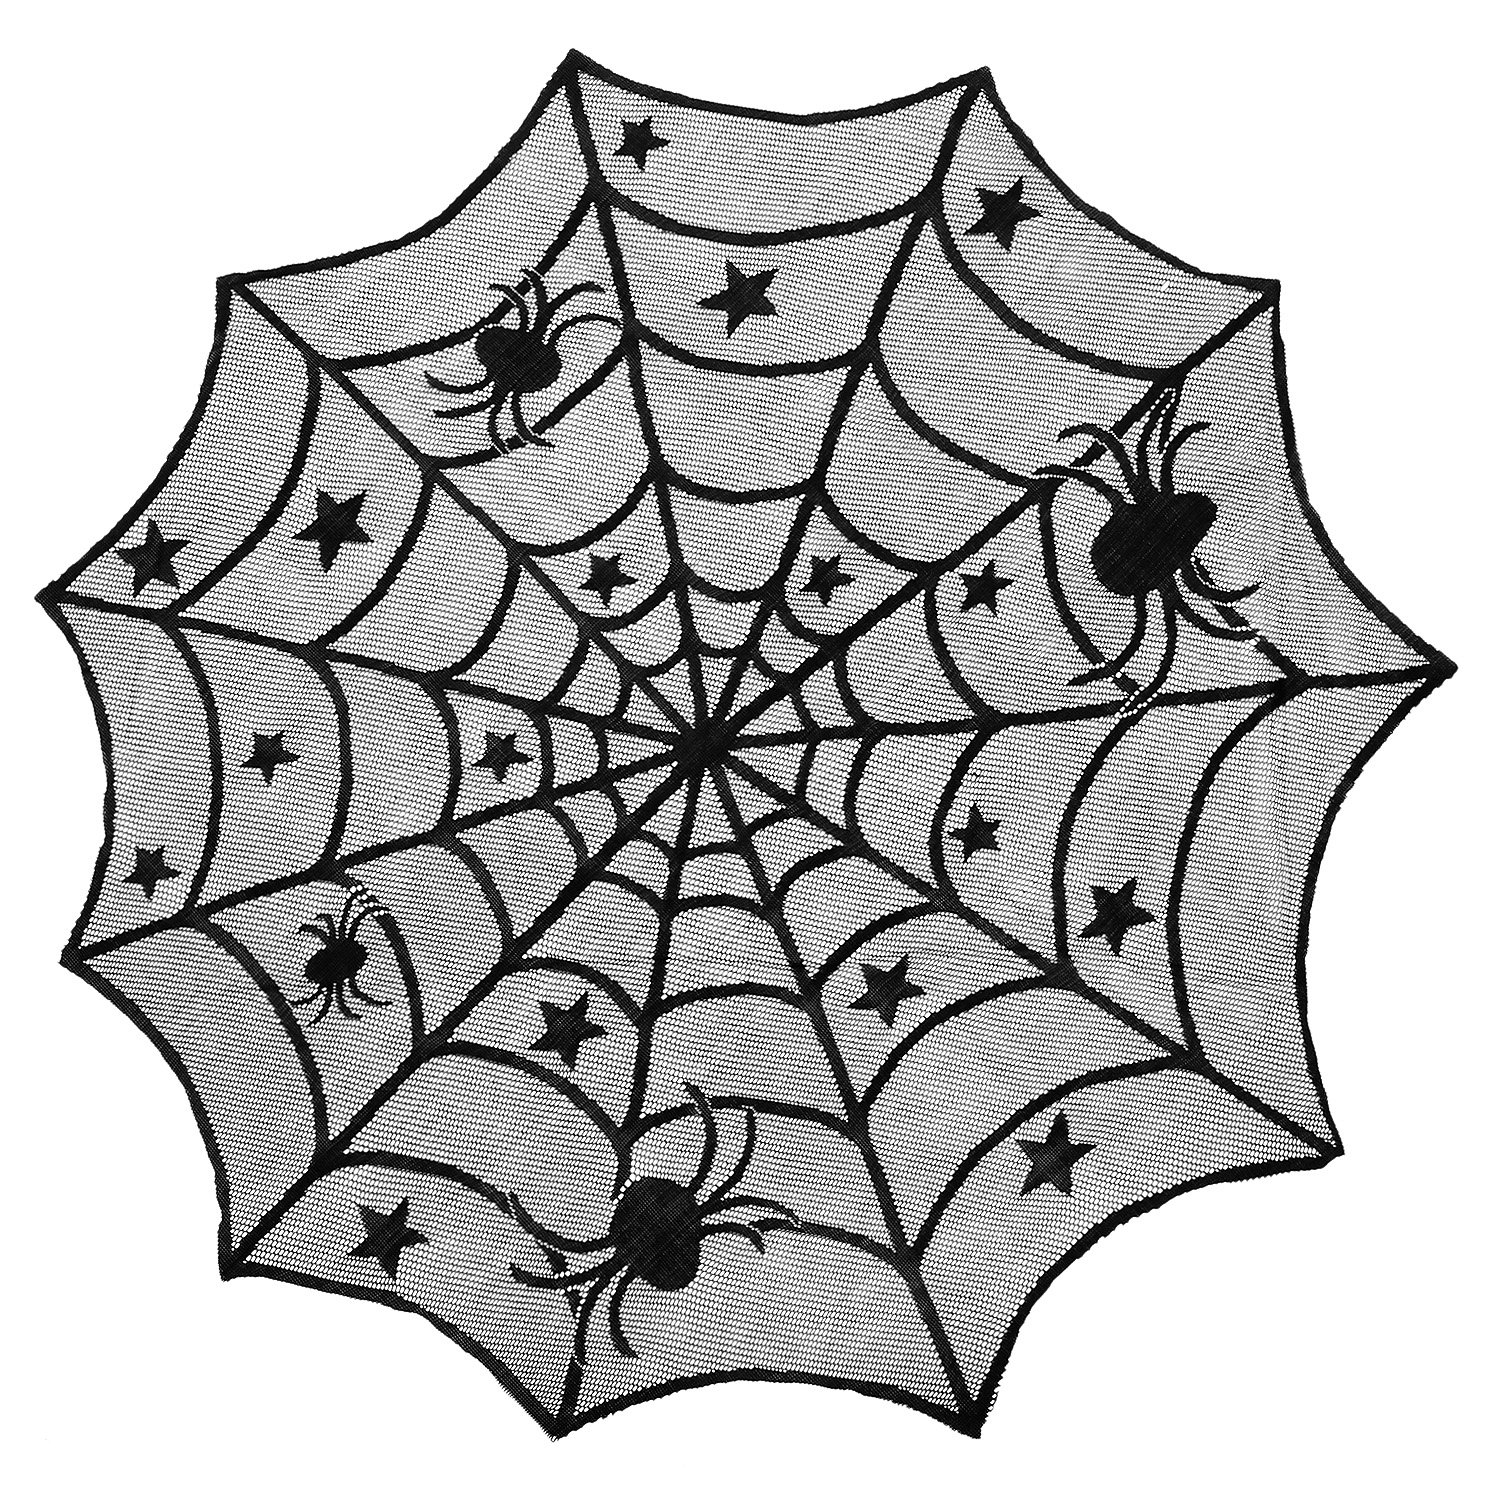 Maddott Halloween Table Topper Cloth 40 Inch Black Spider Halloween Lace Table Decoration,Dinner Parties, Scary Movie Nights